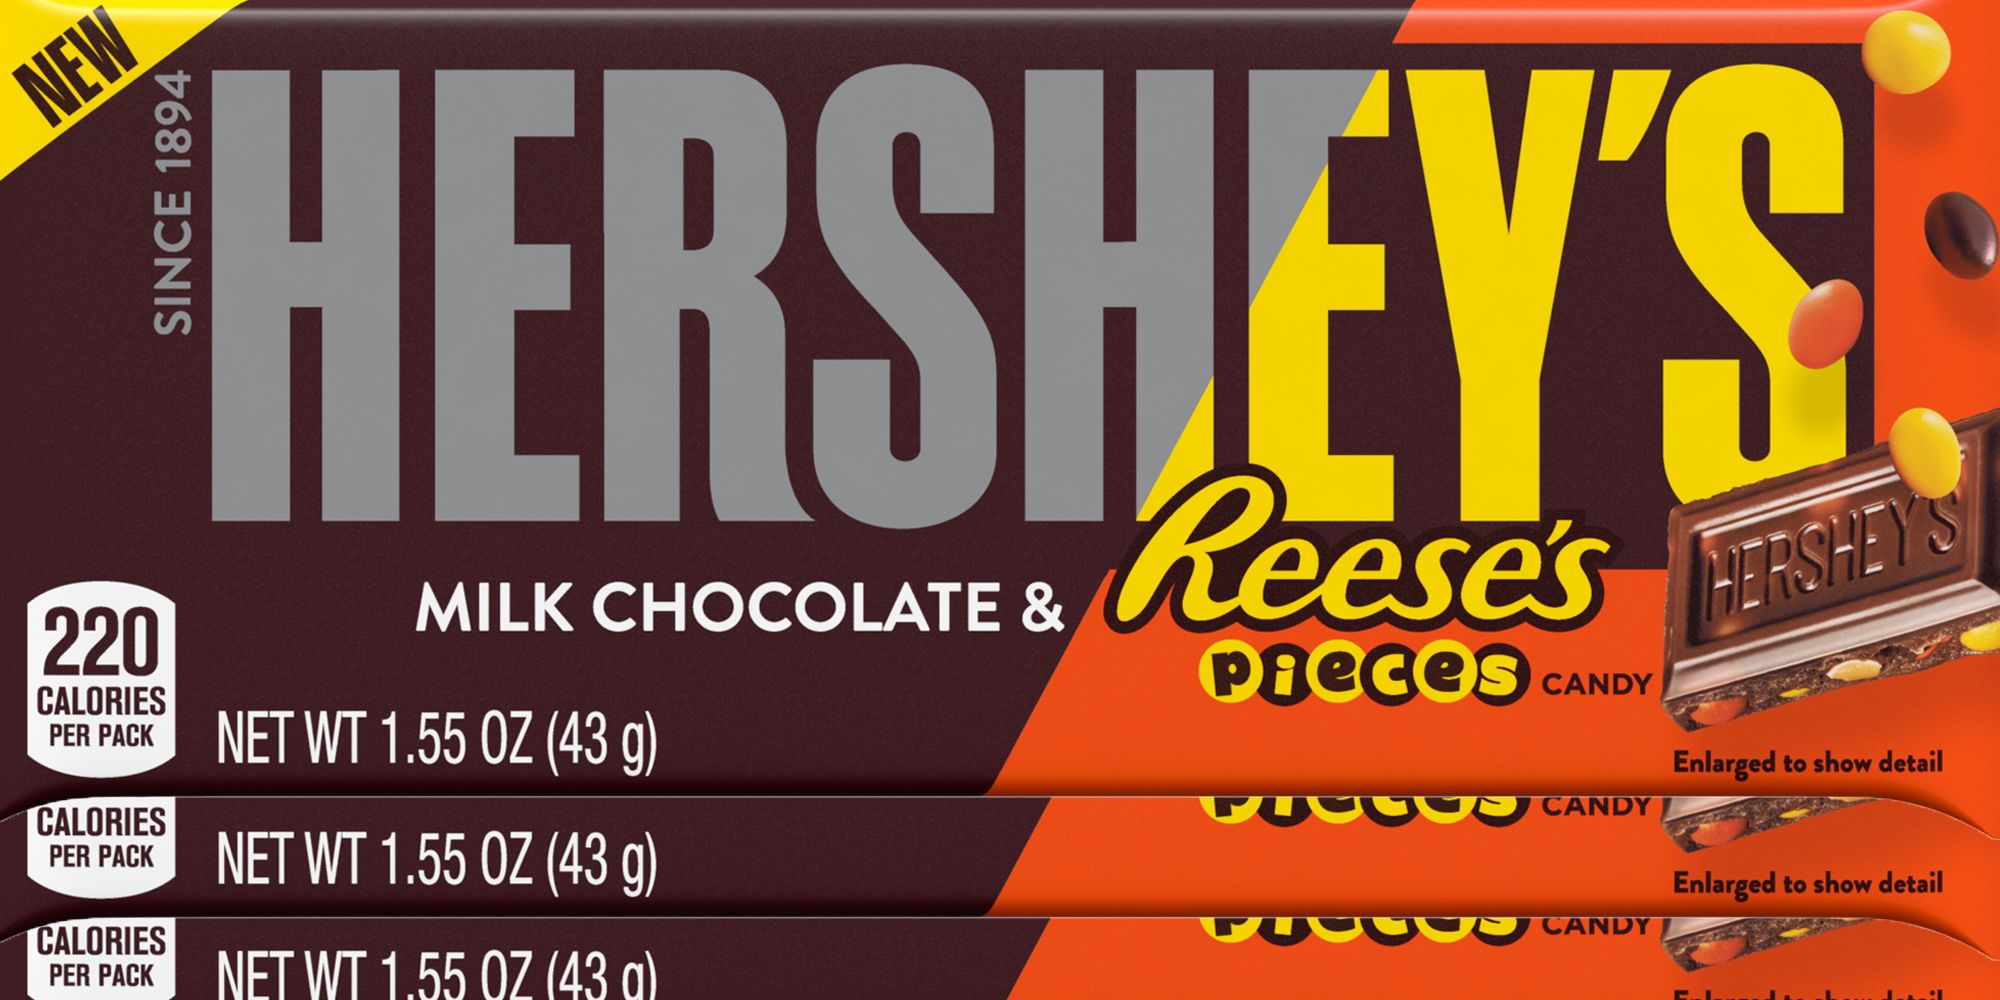 Hersheys New Chocolate Bar Is Filled With Reeses Pieces